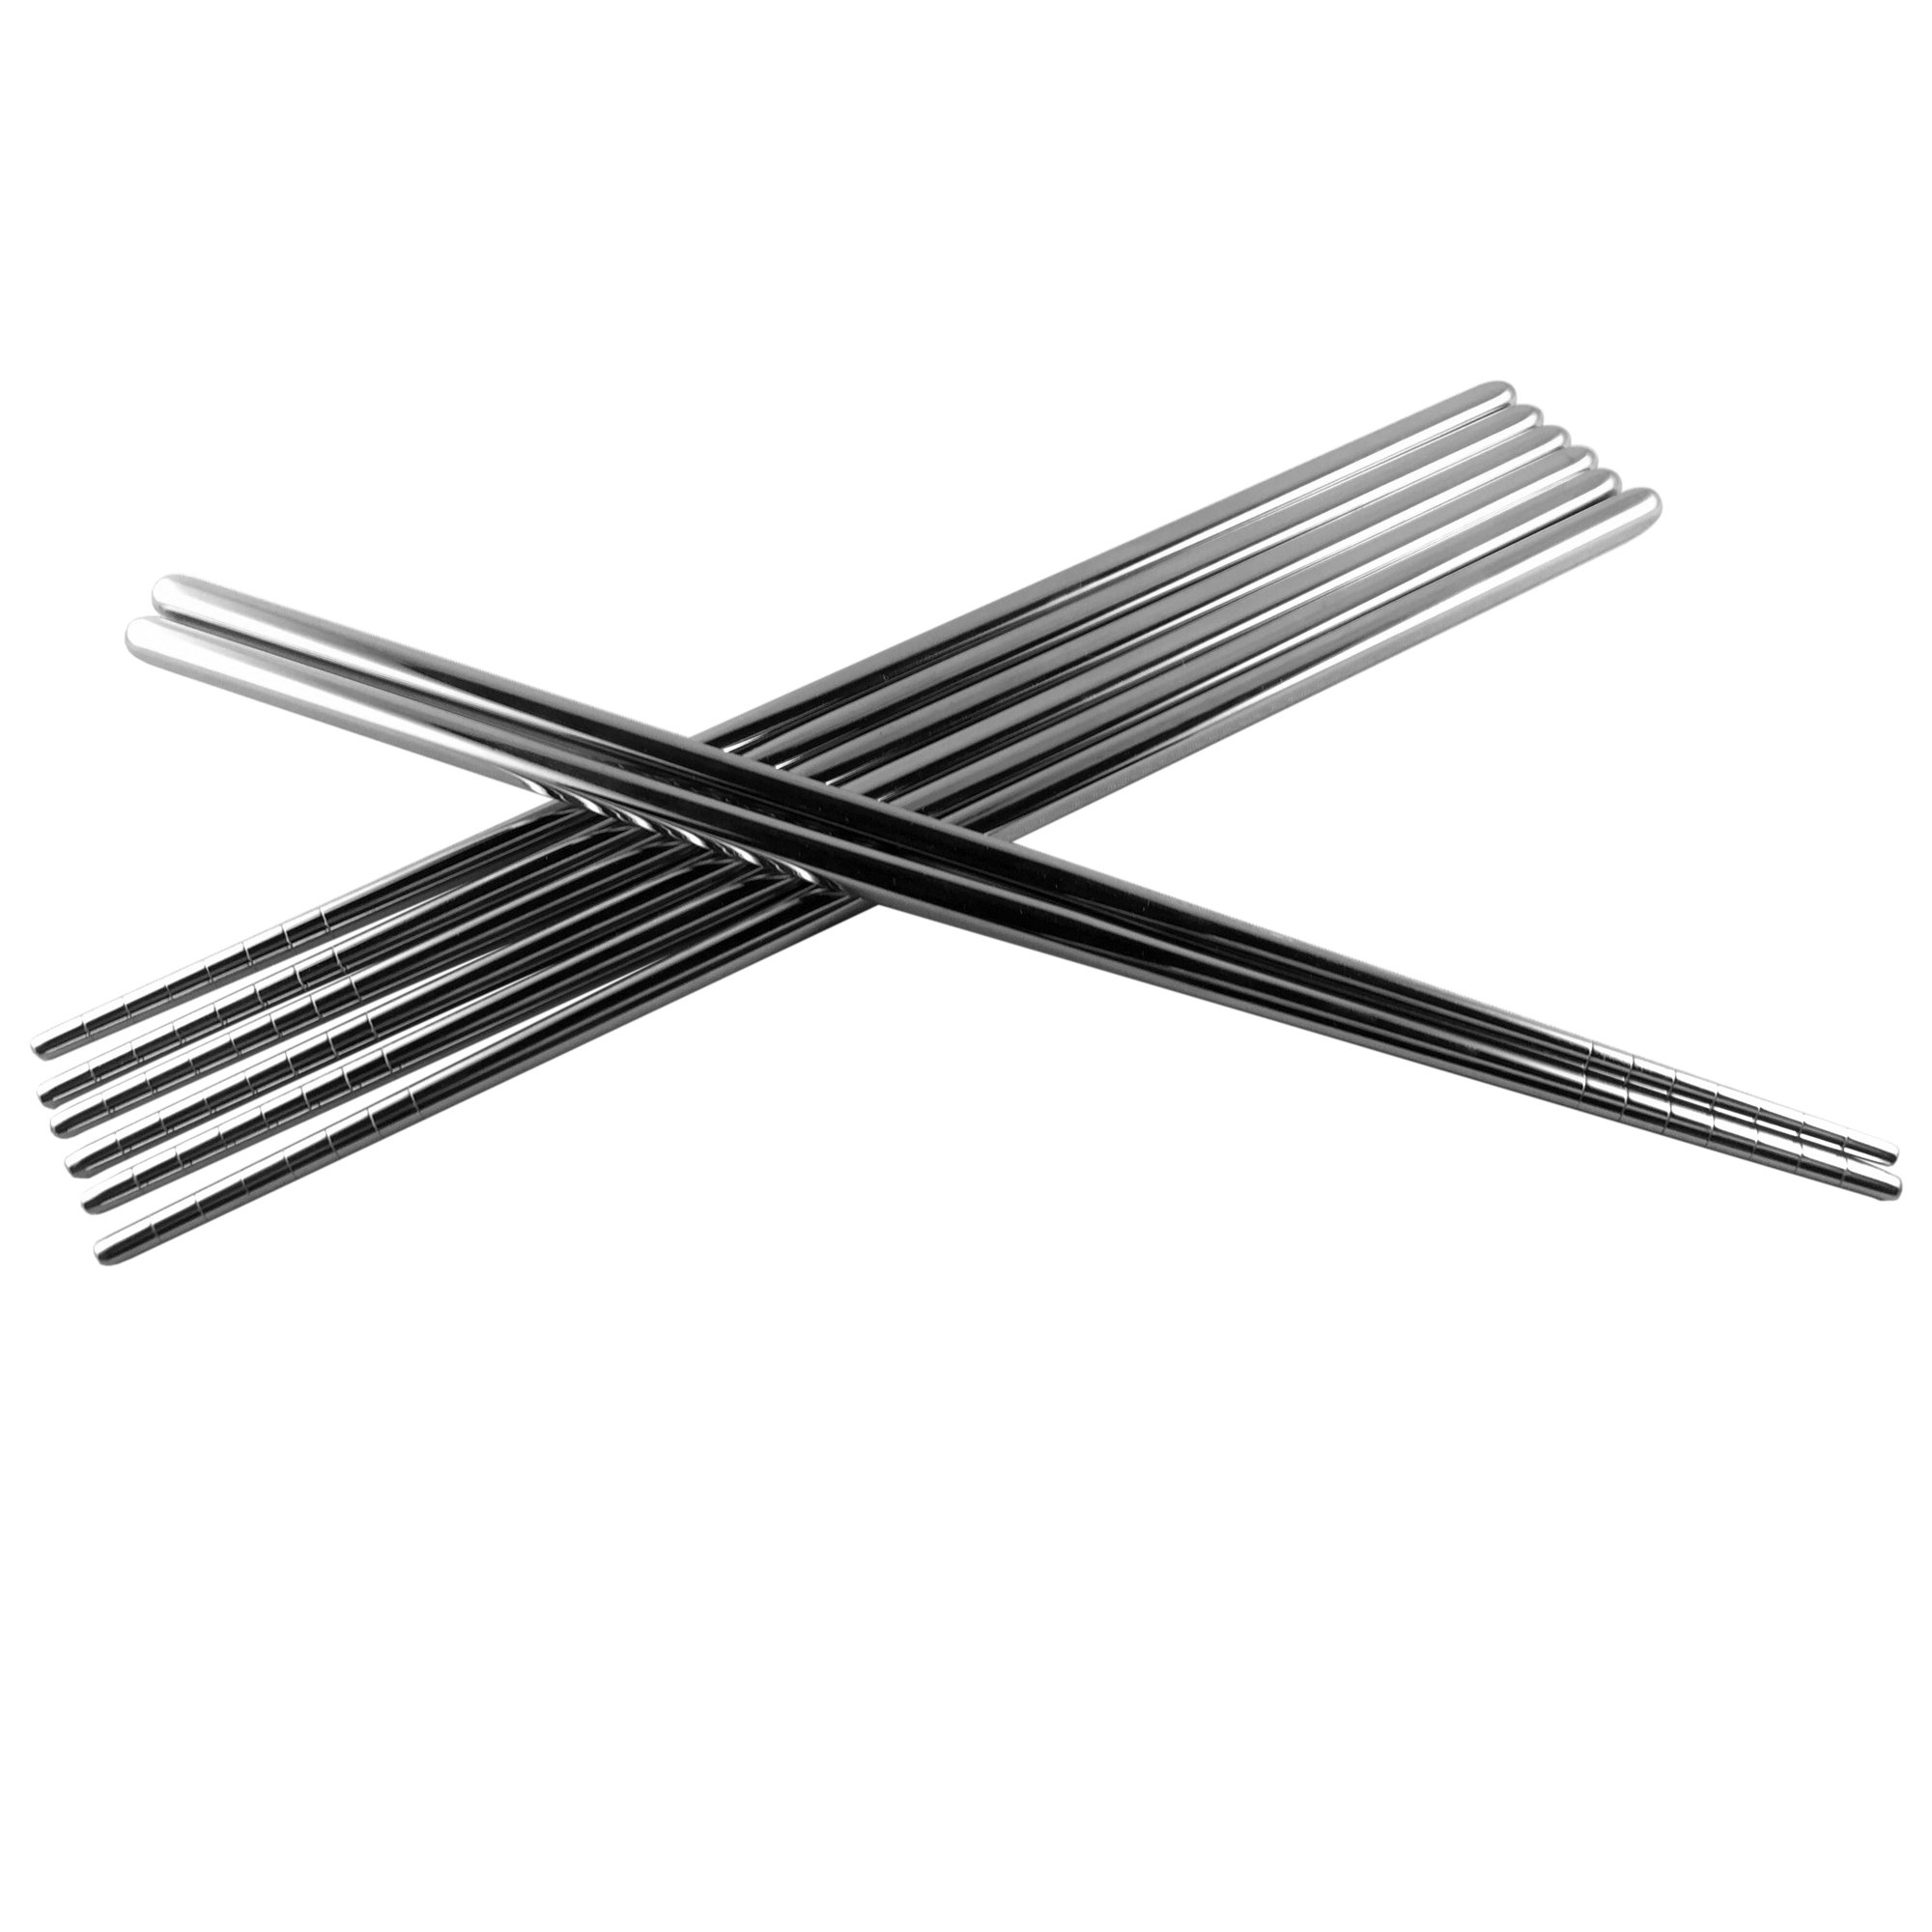 Premium Stainless Steel Korean Chopsticks - Non-Slip Grooves - Strong & Lightweight - 4 Pairs (Recommended)